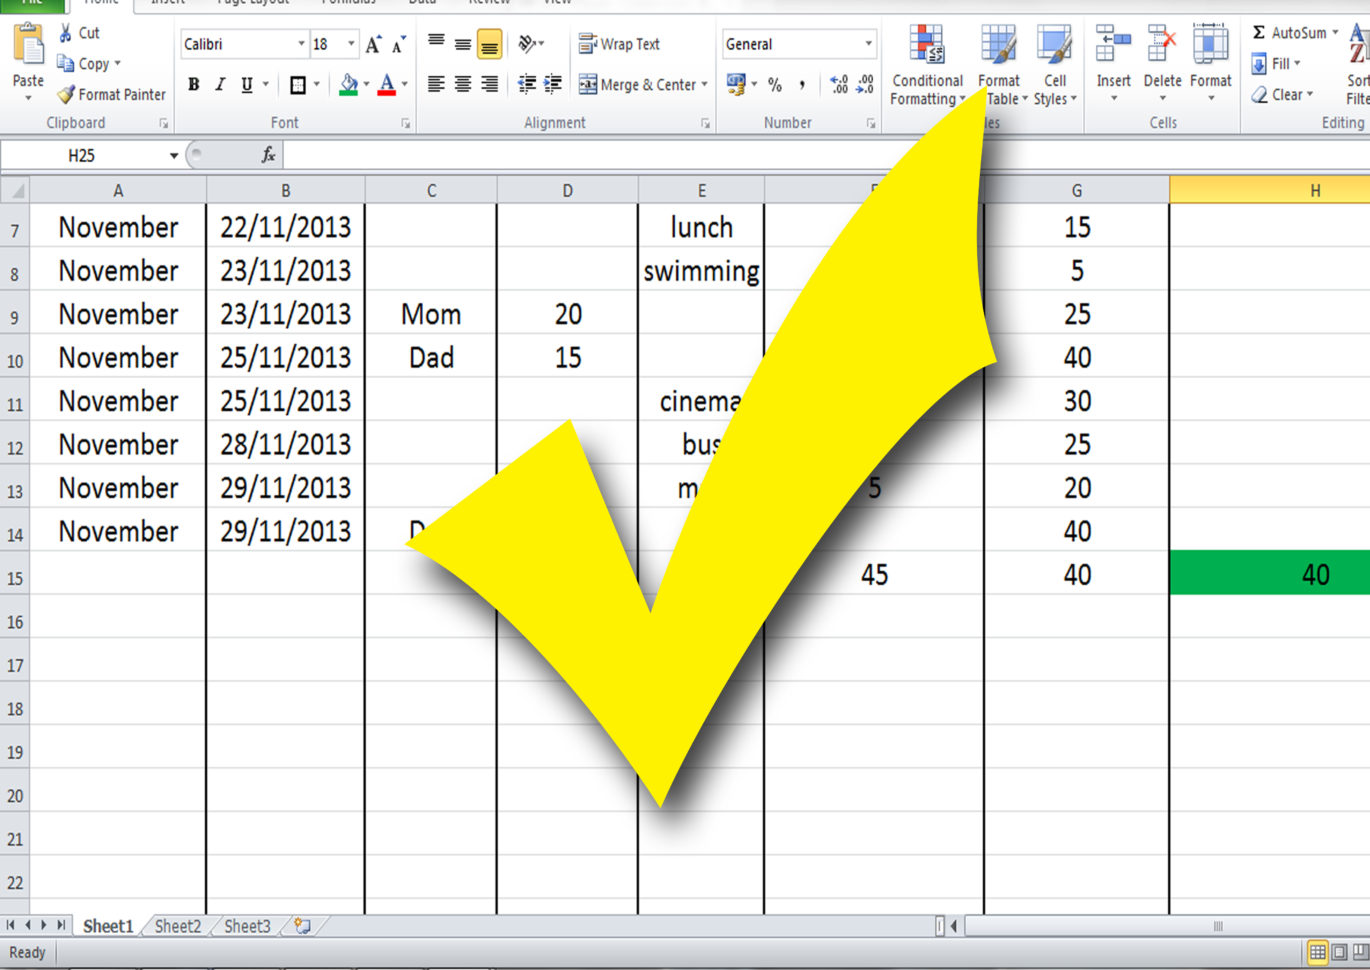 How To Do A Budget Spreadsheet Pertaining To How To Build A Budget Spreadsheet Teenagers: 13 Steps